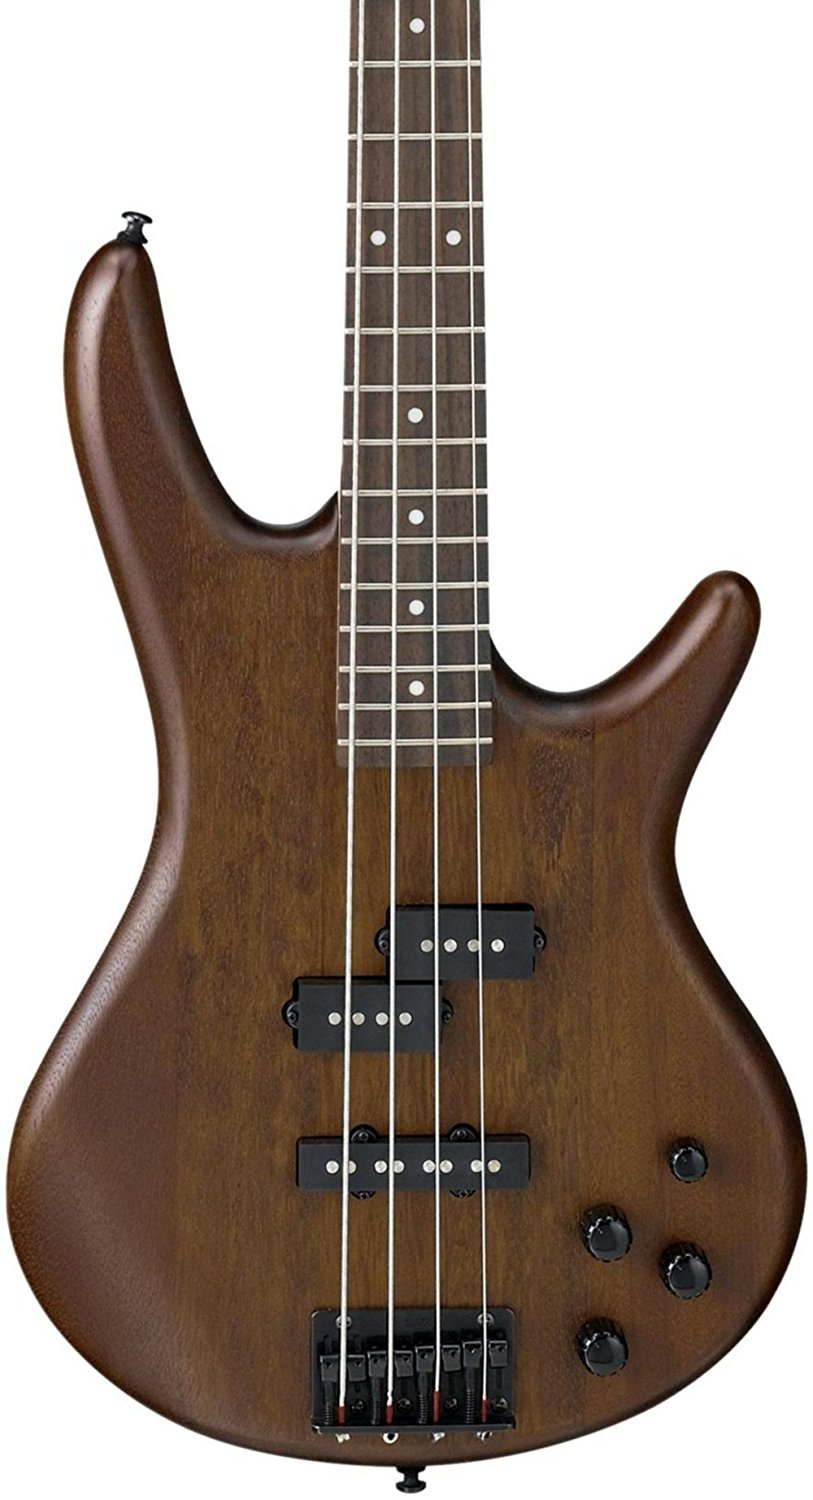 Ibanez GSR200 BWNF Product Review - Best Musical ... Bass Guitar Instrument